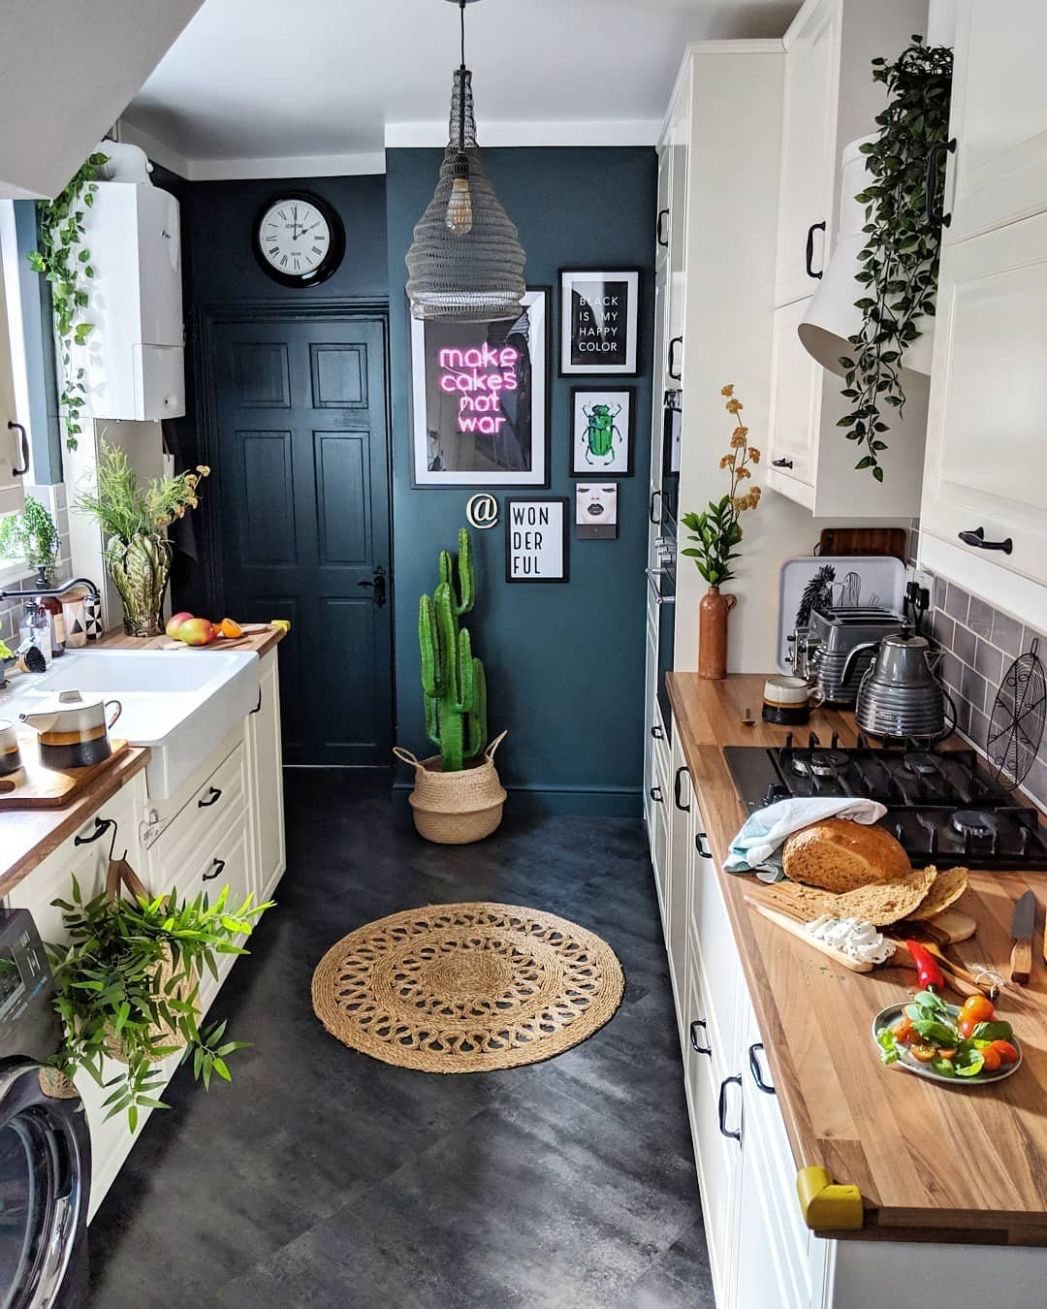 Find Tons of Decor Inspiration in This Quirky and Colorful UK Home ...